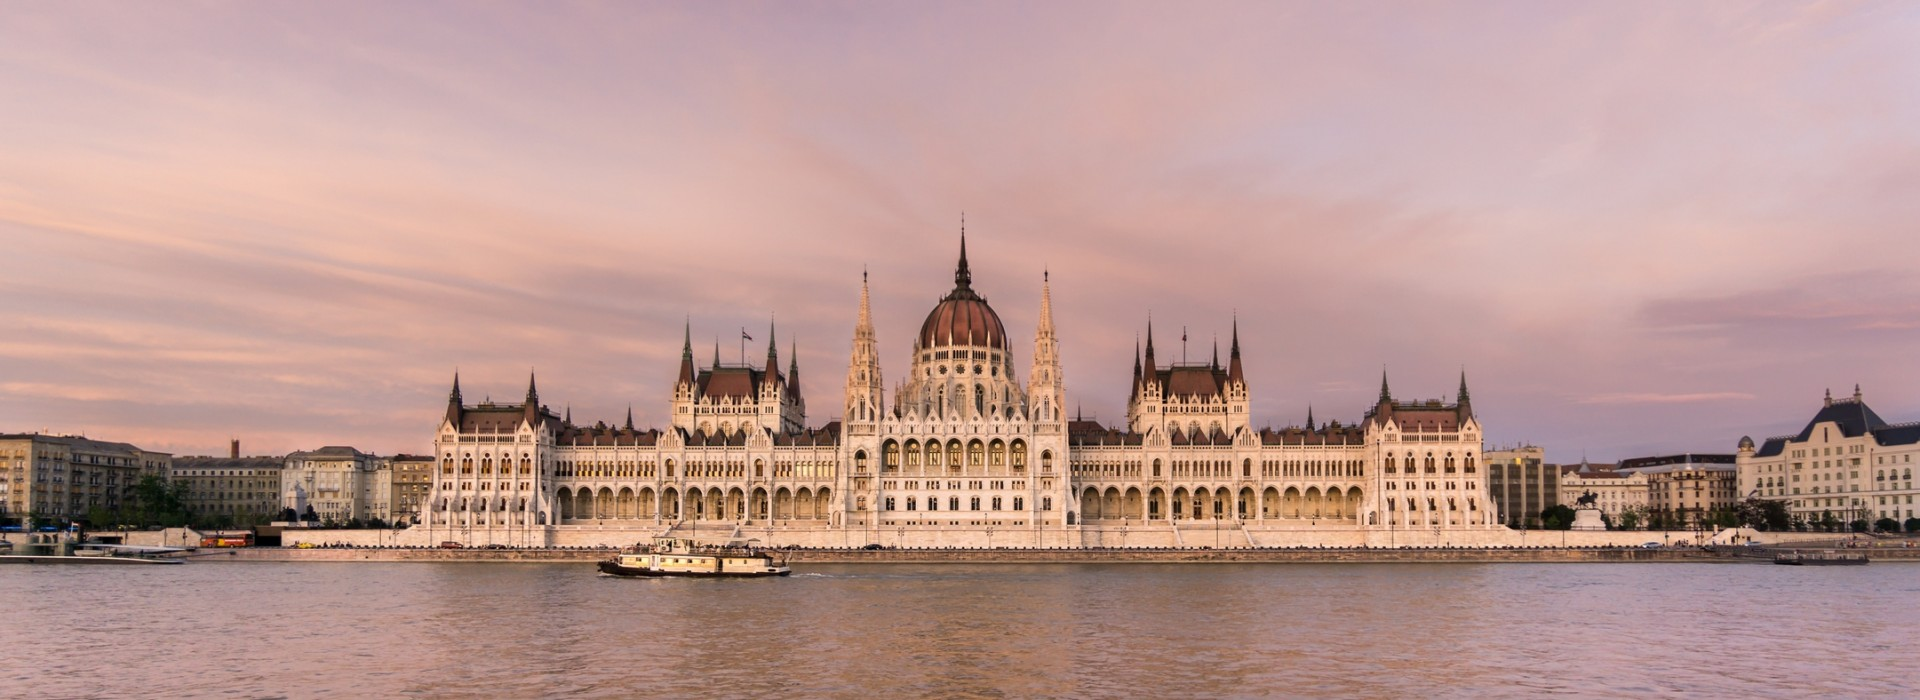 Hungarian Parliament Building, one of Budapest's most iconic landmarks